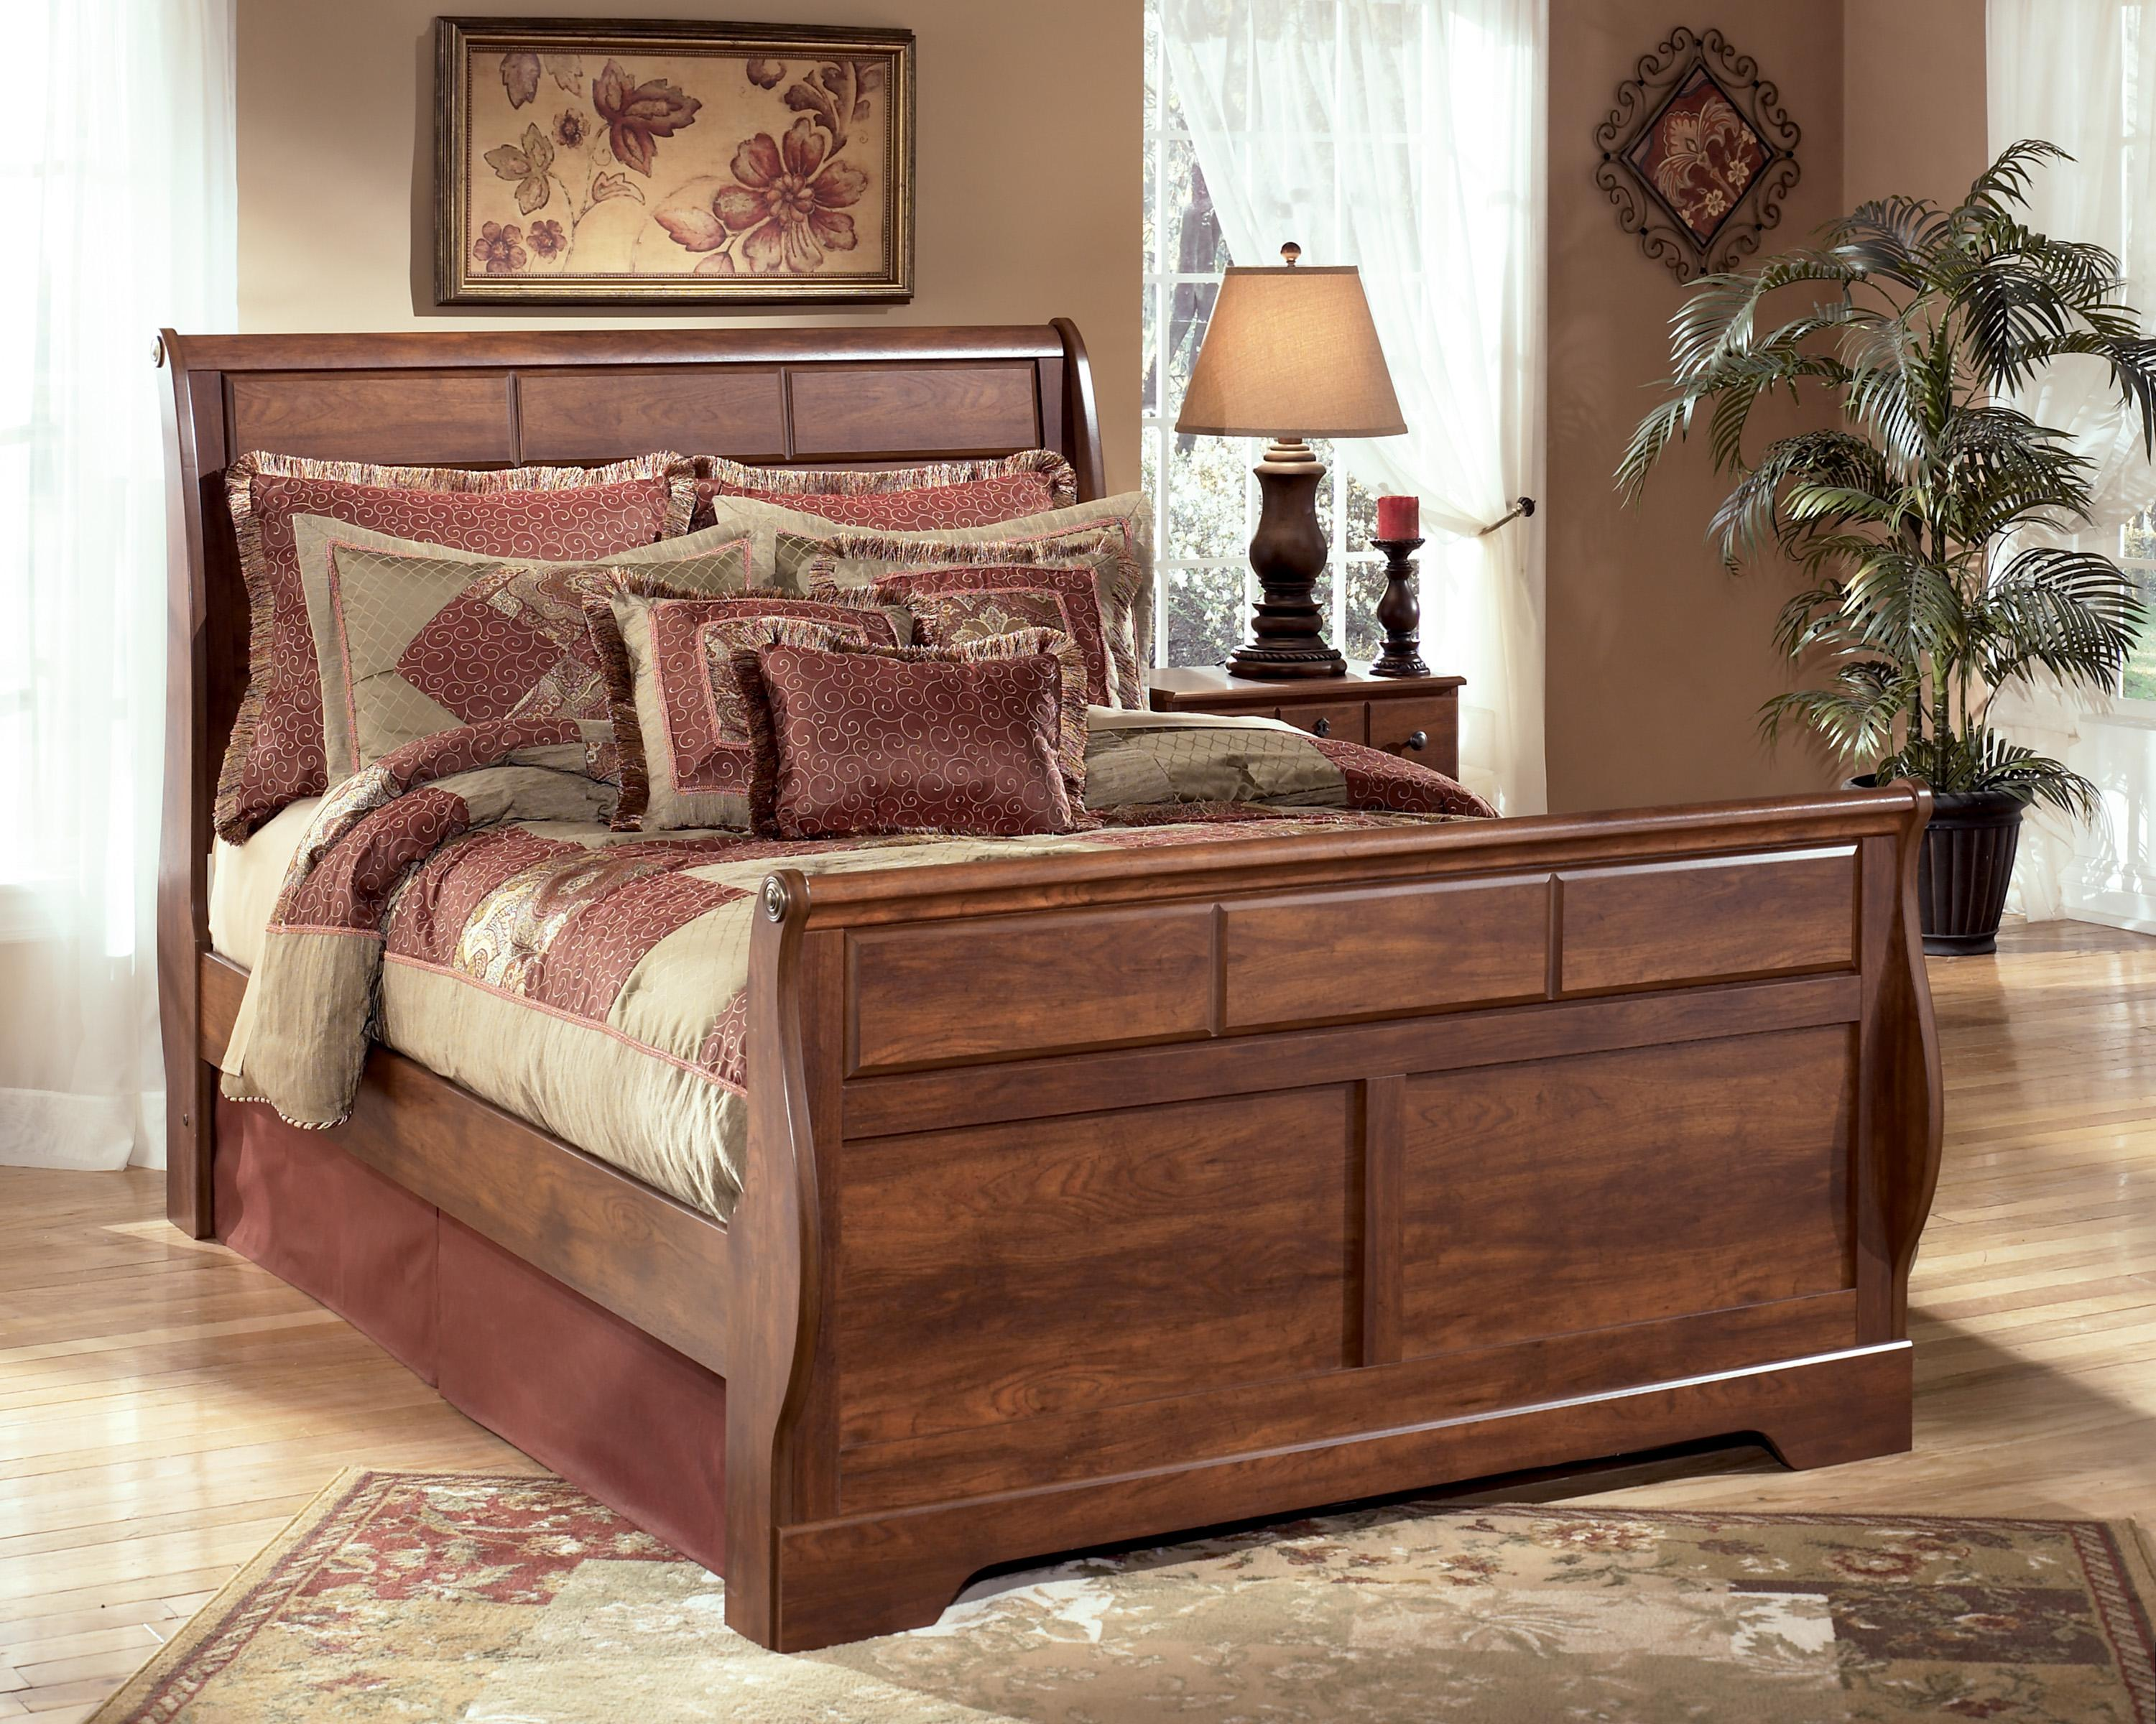 Signature Design by Ashley Timberline Queen Sleigh Bed - Item Number: B258-57+54+96